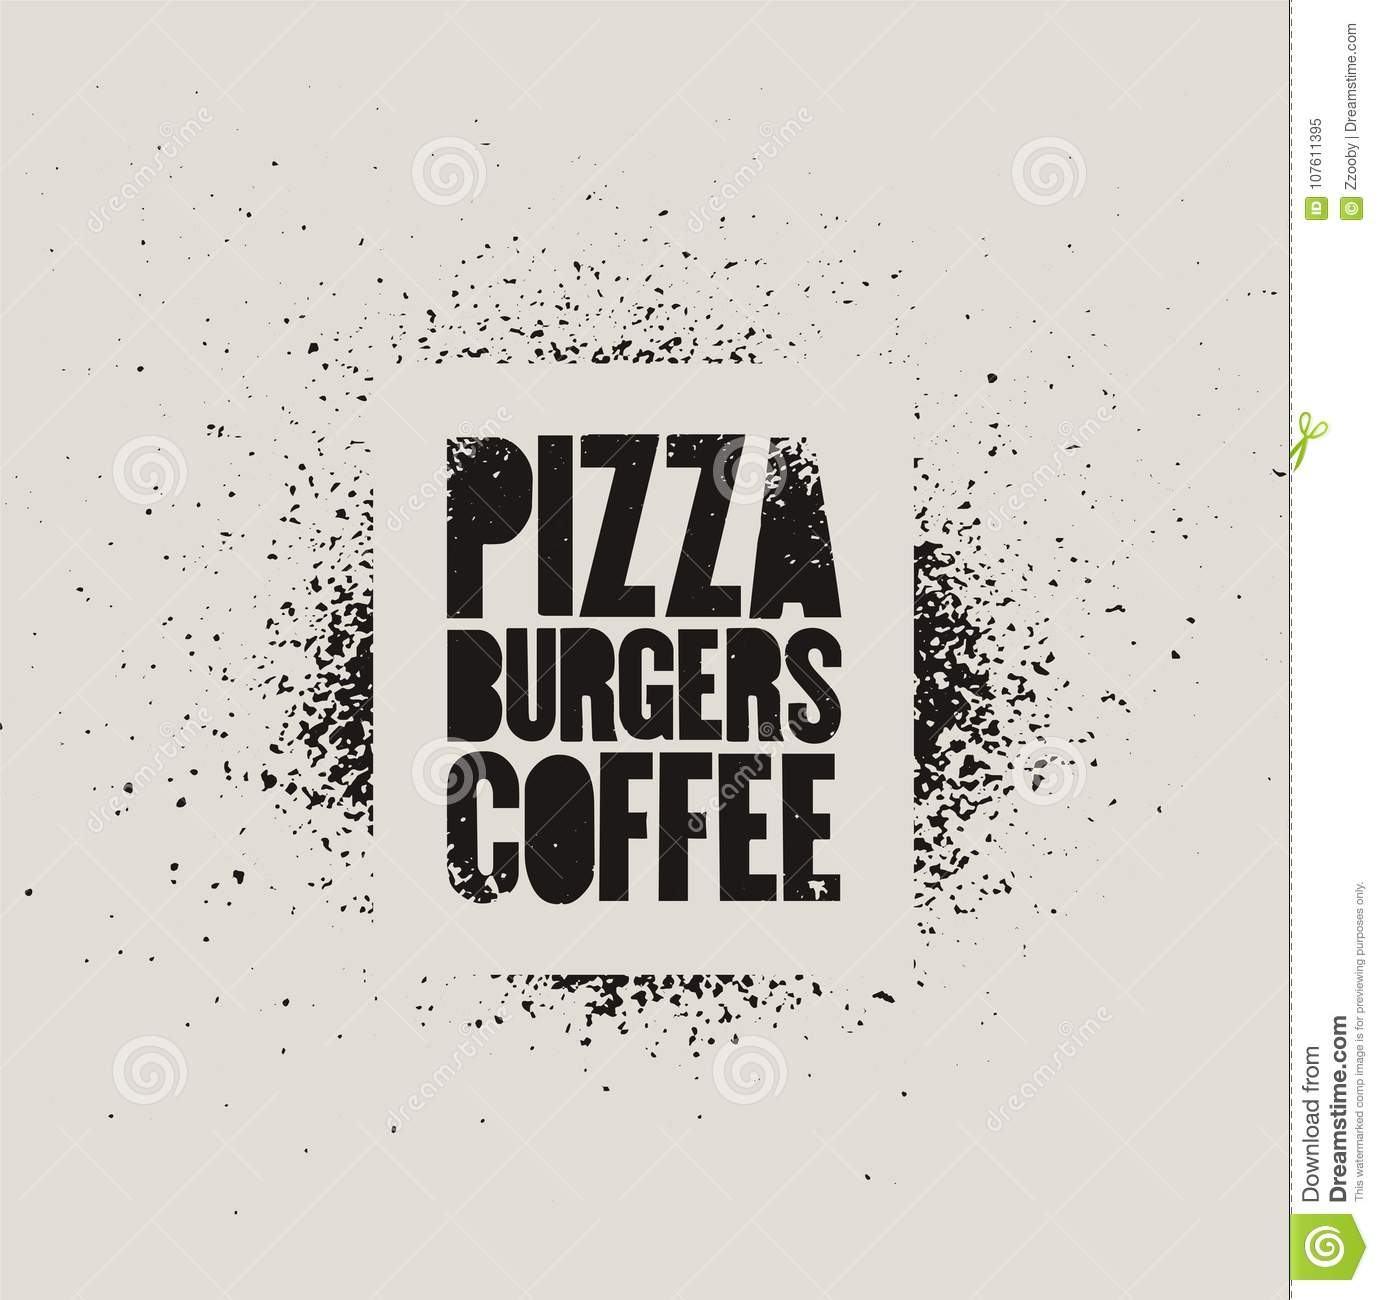 Arte Cafe Pizza Pizza Burgers Coffee Typographic Stencil Street Art